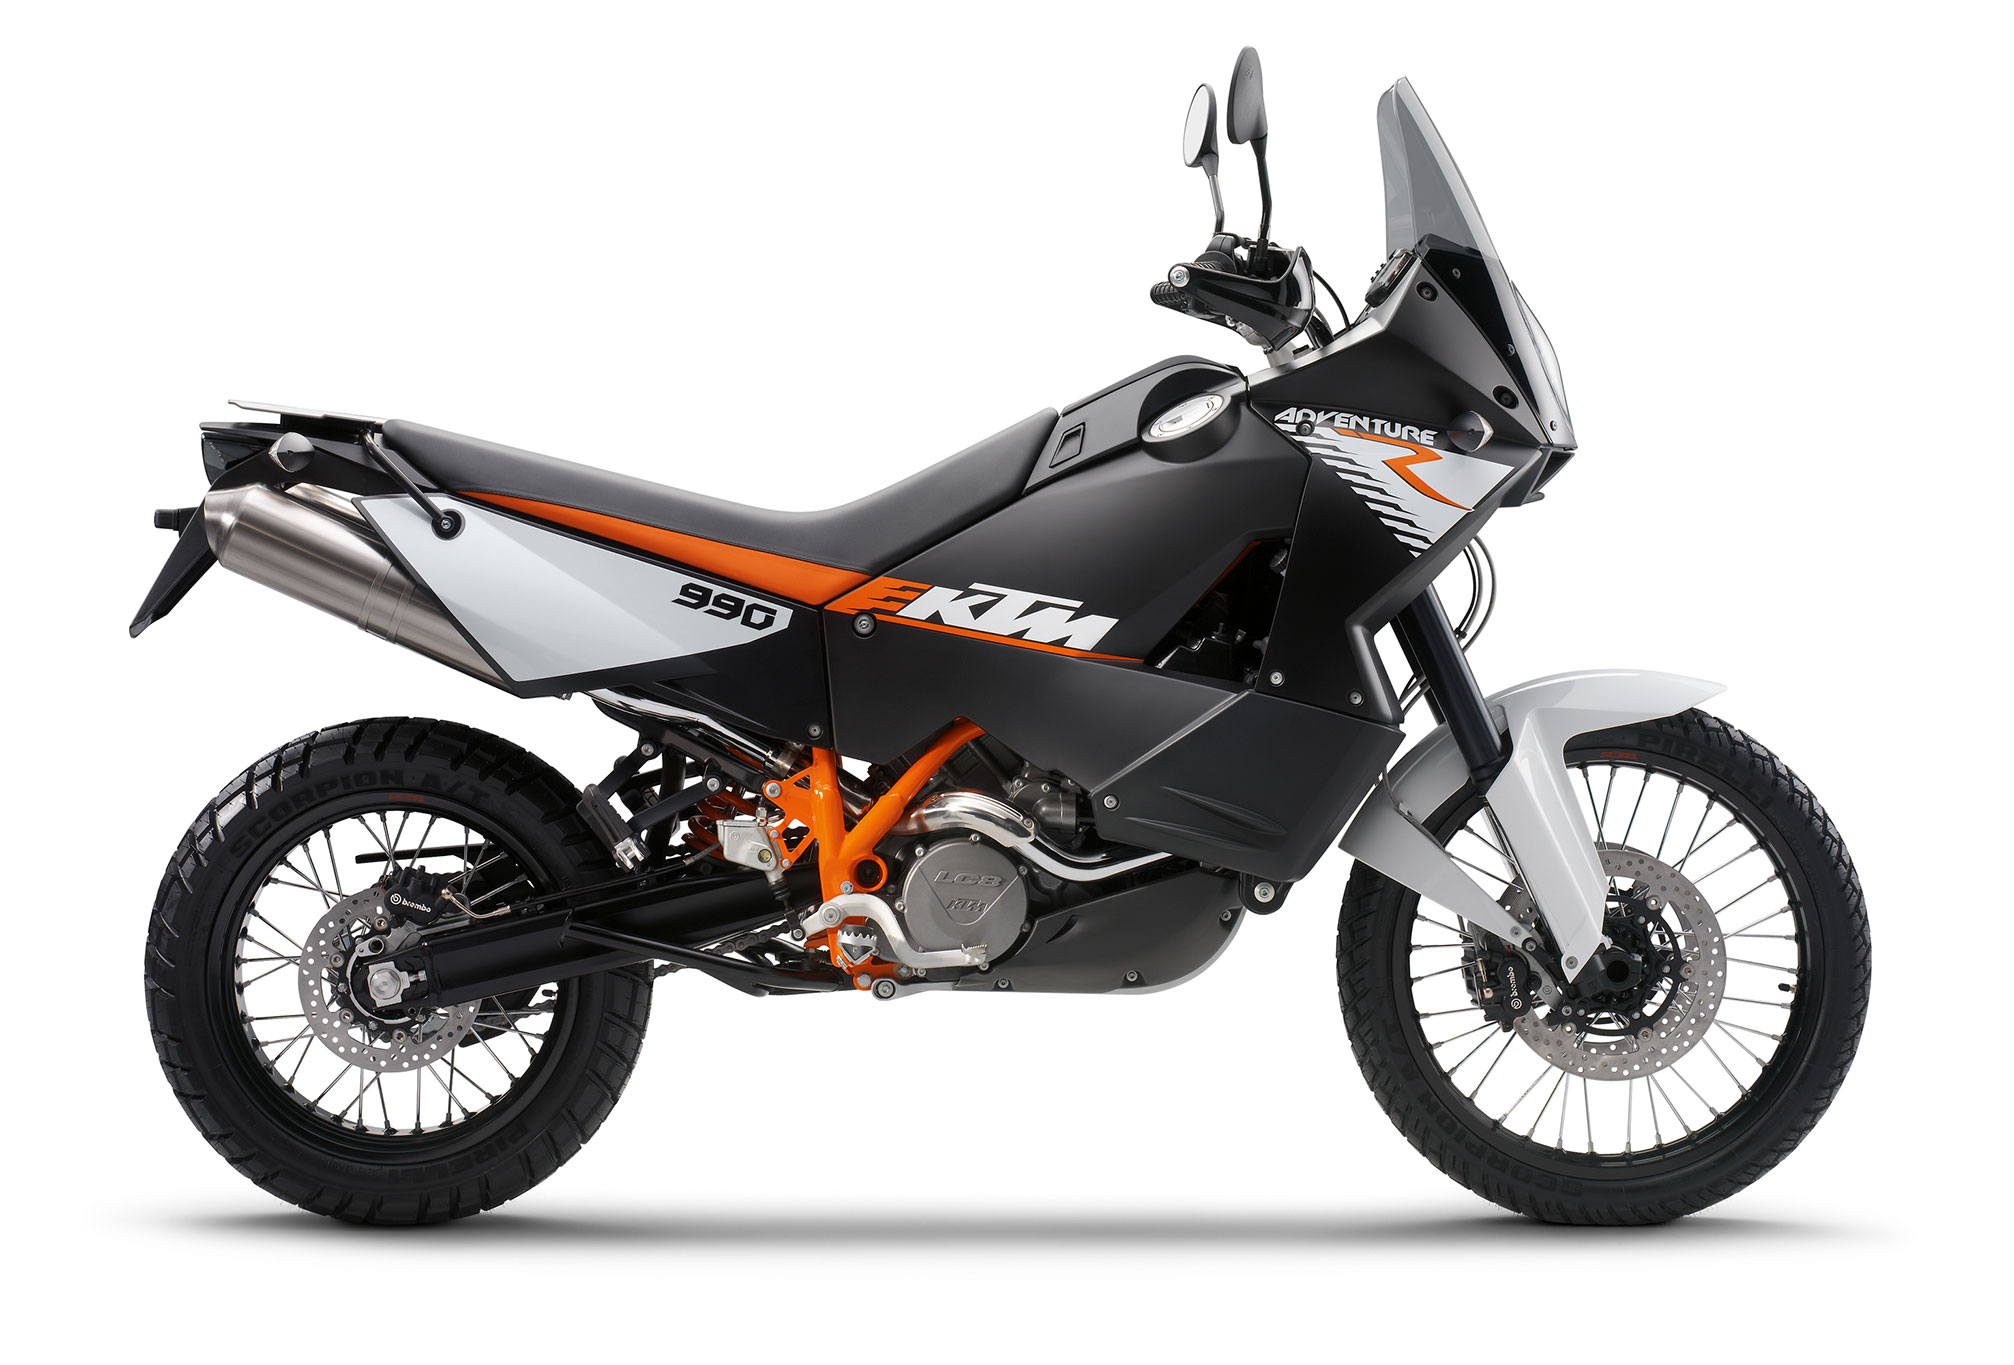 2013 KTM 990 Adventure Review